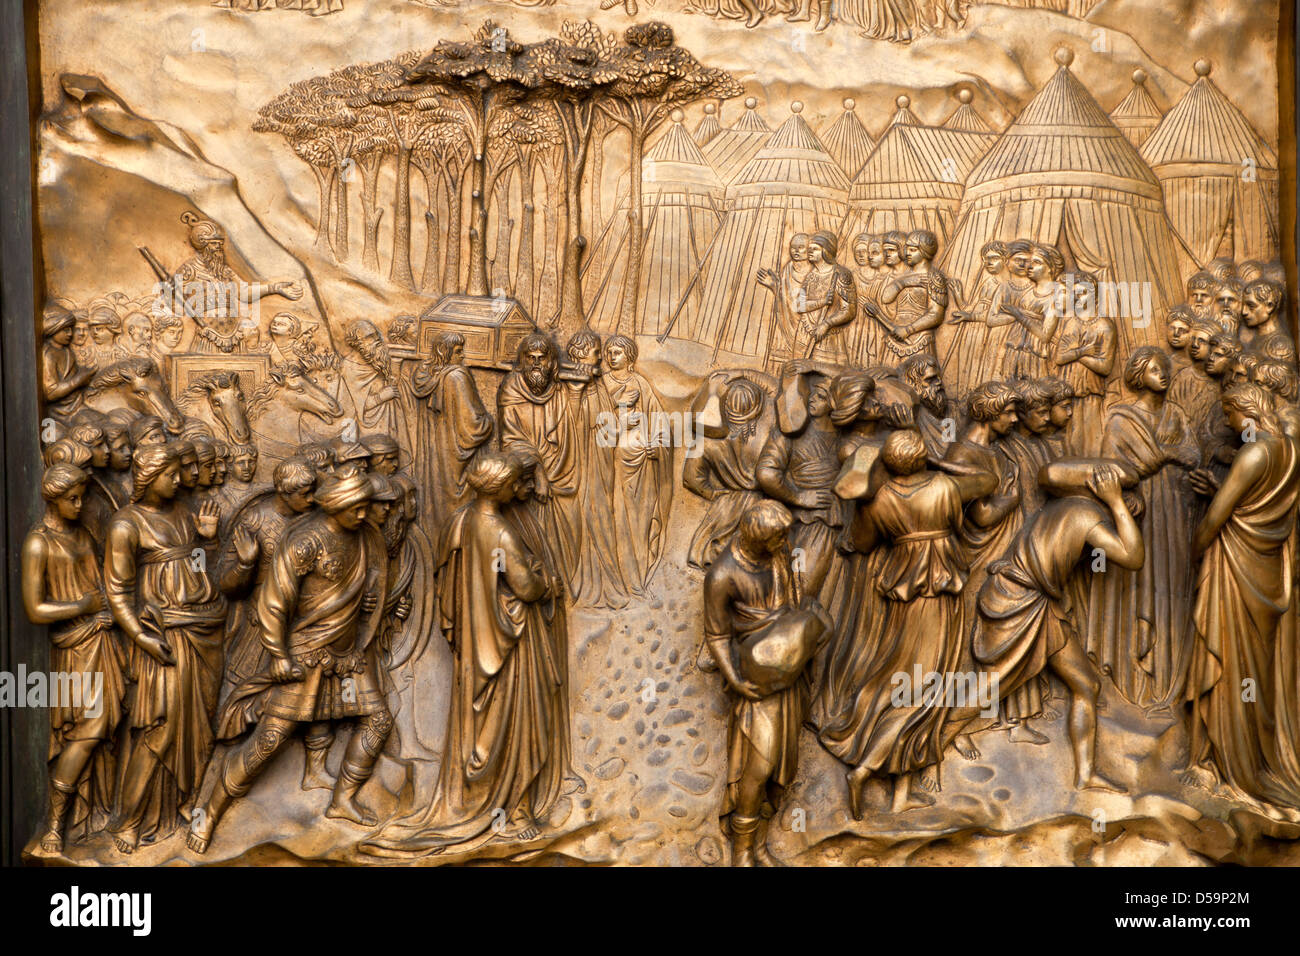 detail of the Ghiberti doors or Gates of Paradise at Grace Cathedral San Francisco & Gates Of Paradise Stock Photos \u0026 Gates Of Paradise Stock Images - Alamy